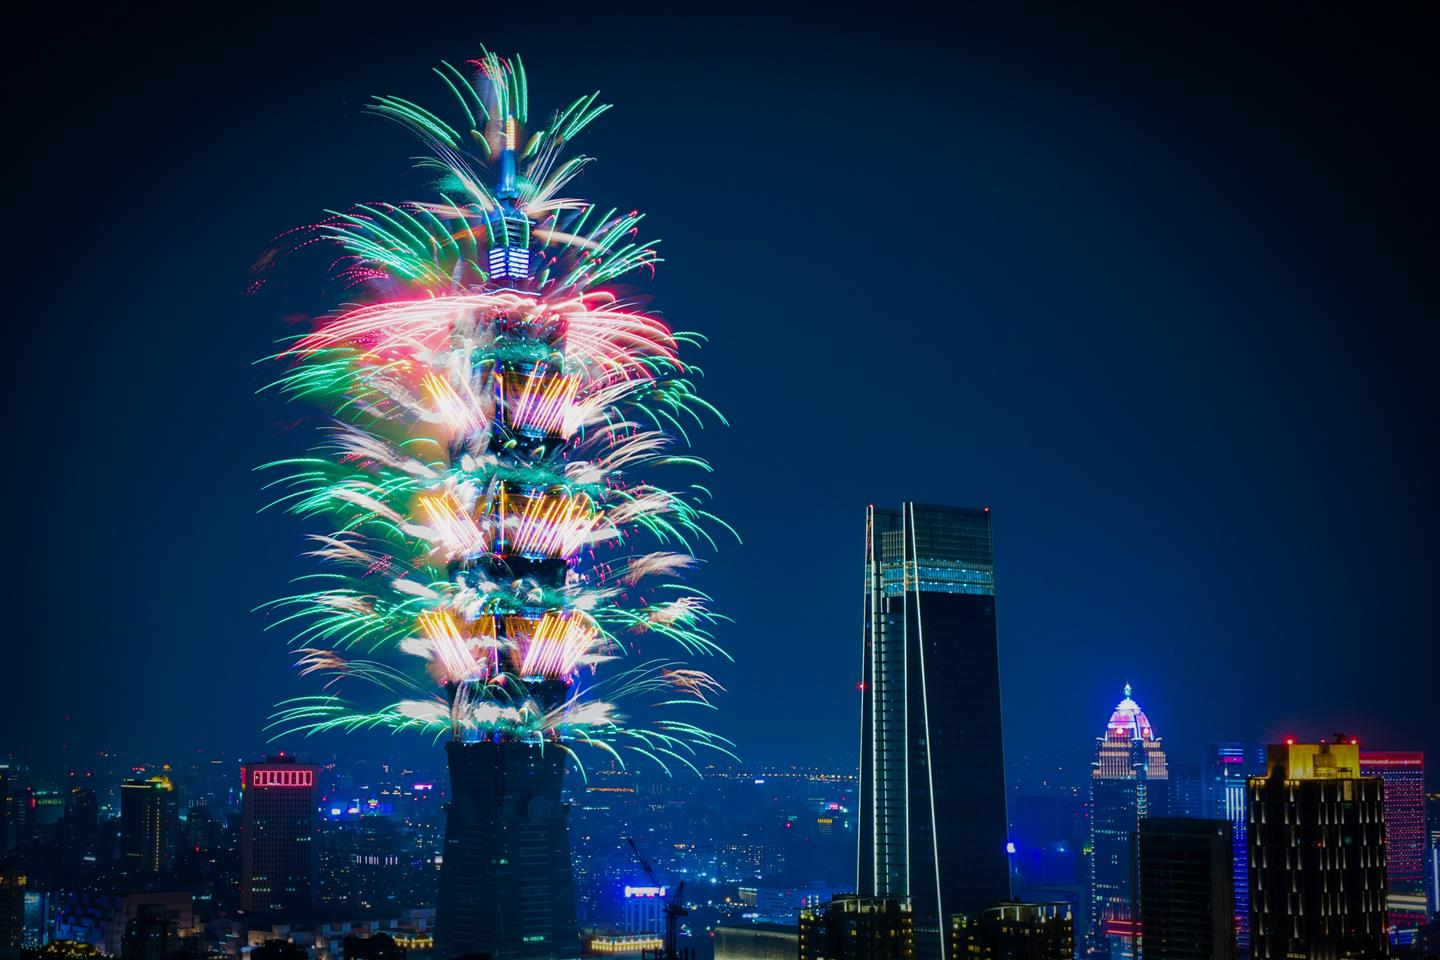 Image taken from Taipei 101 official website